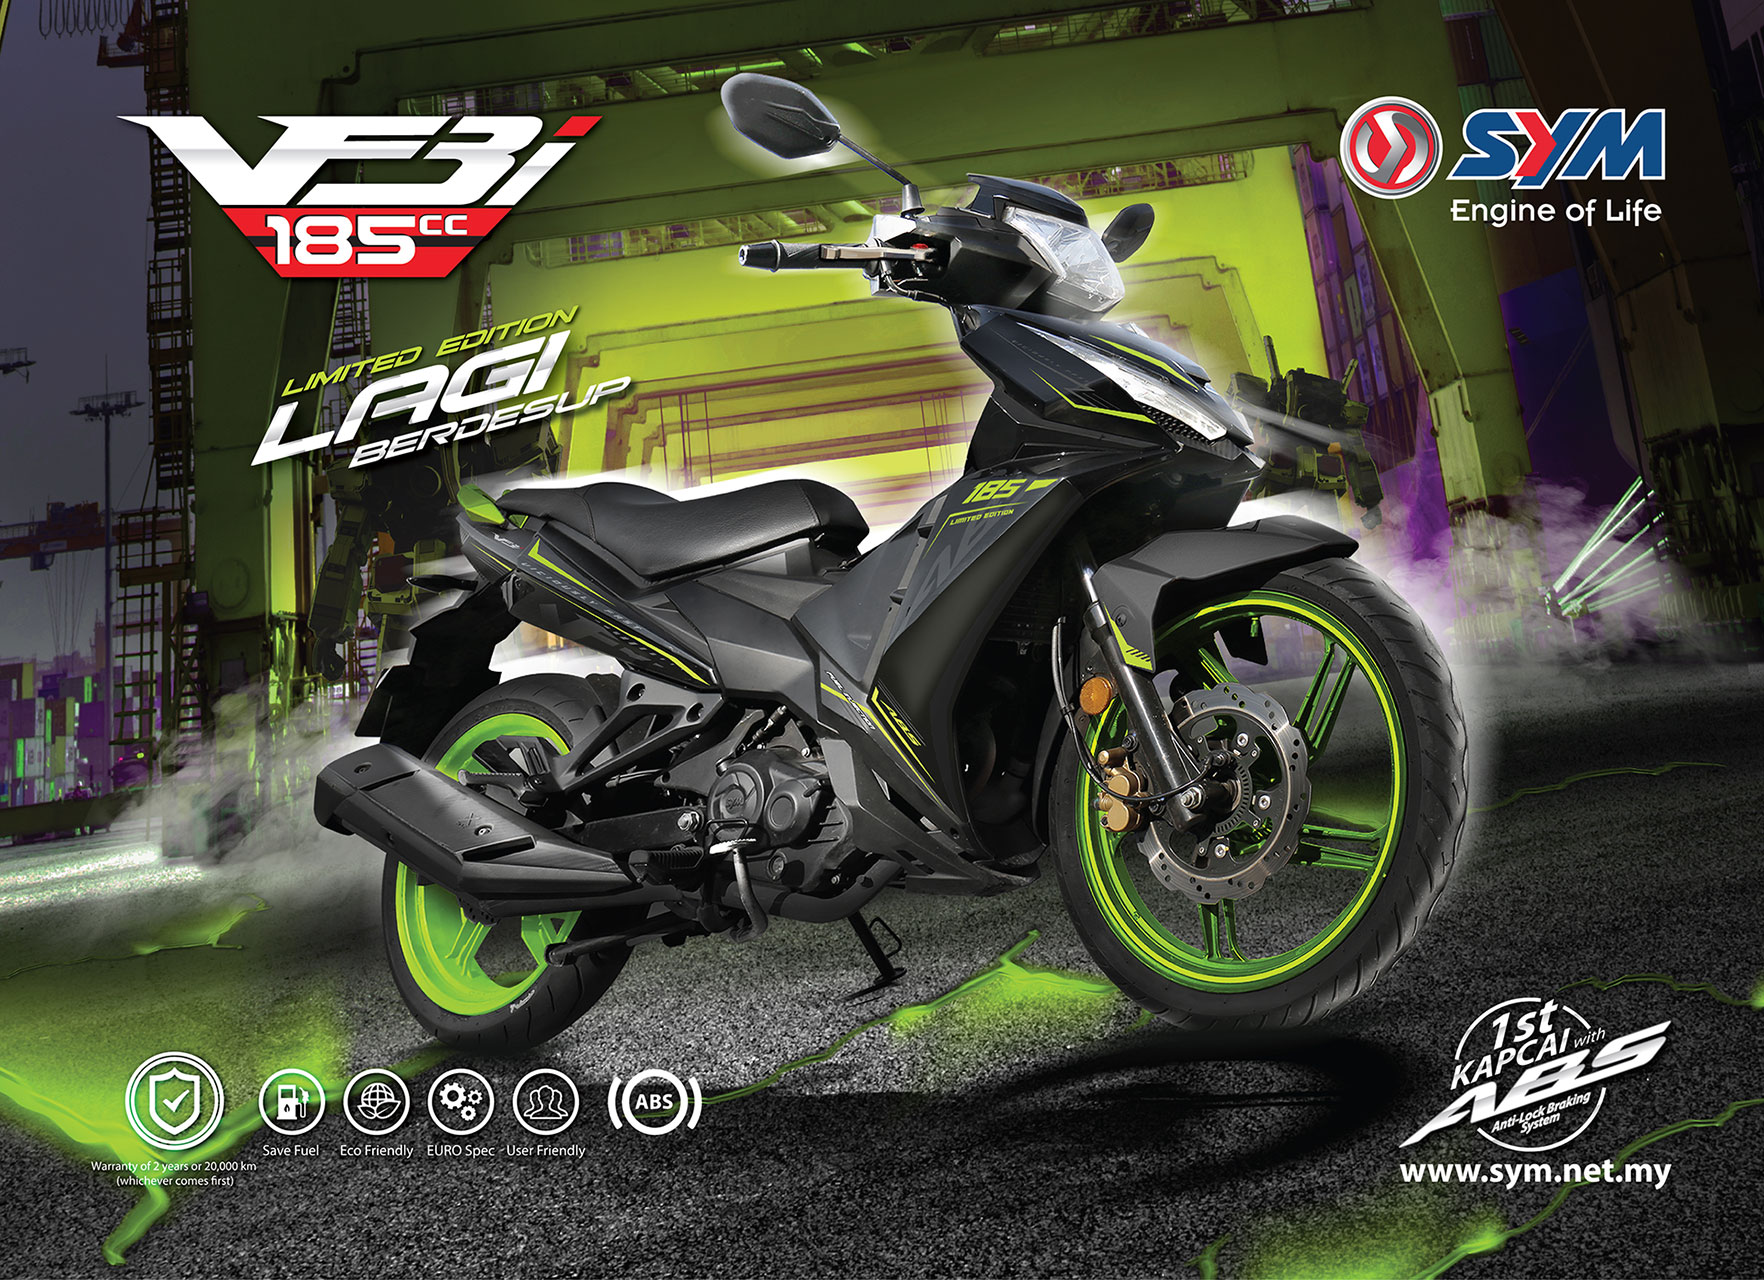 PRESS RELEASE - ADDITIONAL 5,000 UNITS - SYM VF3i 185 LIMITED EDITION